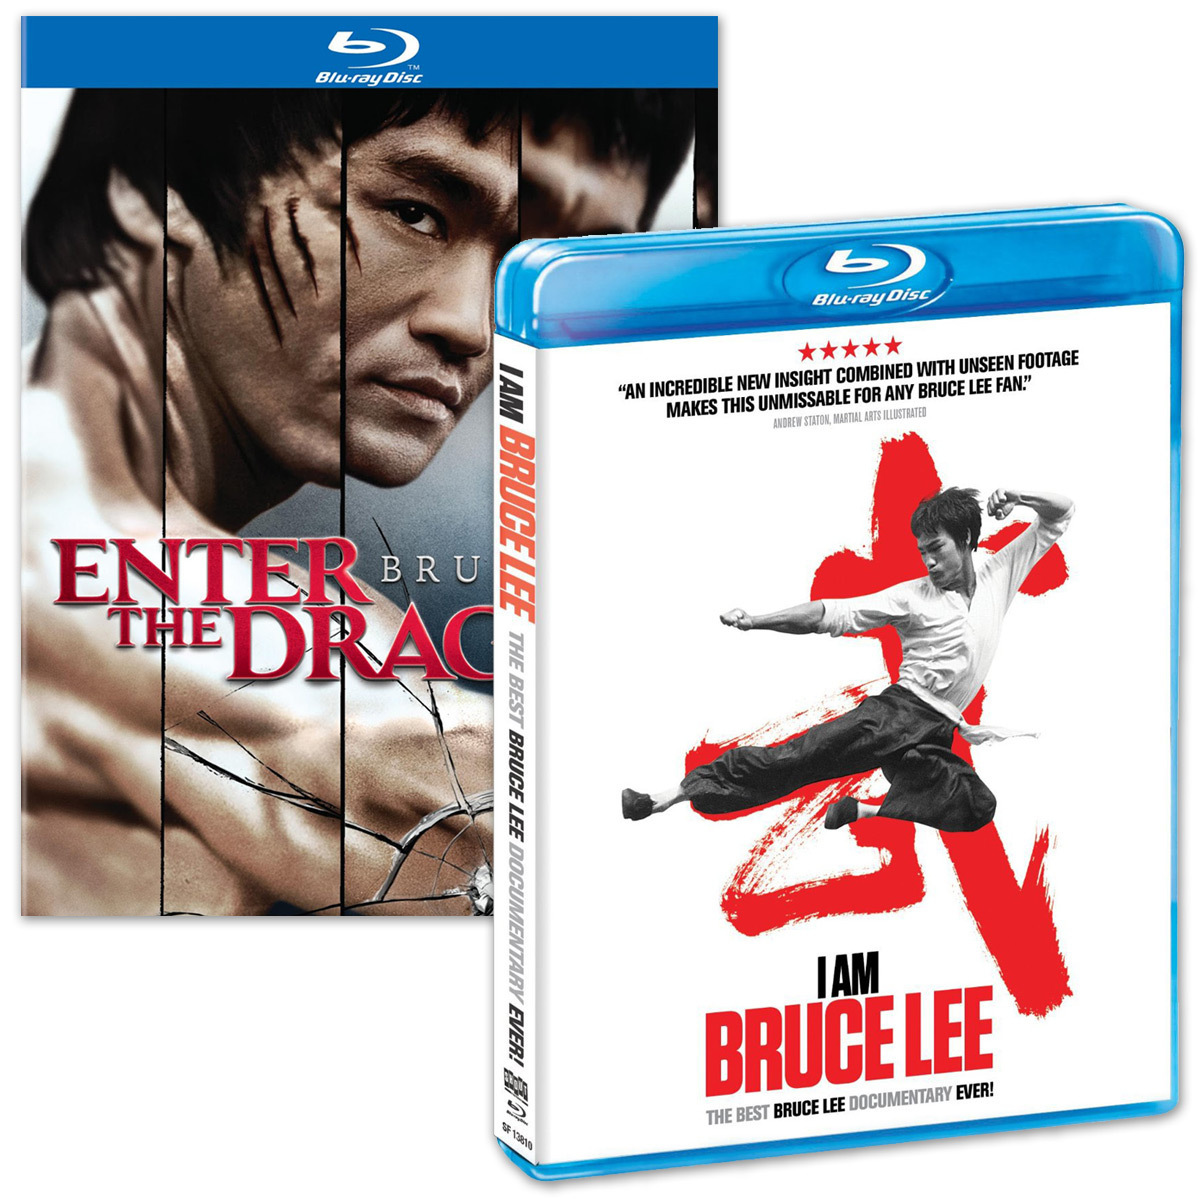 Bruce Lee Enter the Dragon 40th Anniversary BluRay and I Am Bruce Lee BluRay Combo Pack